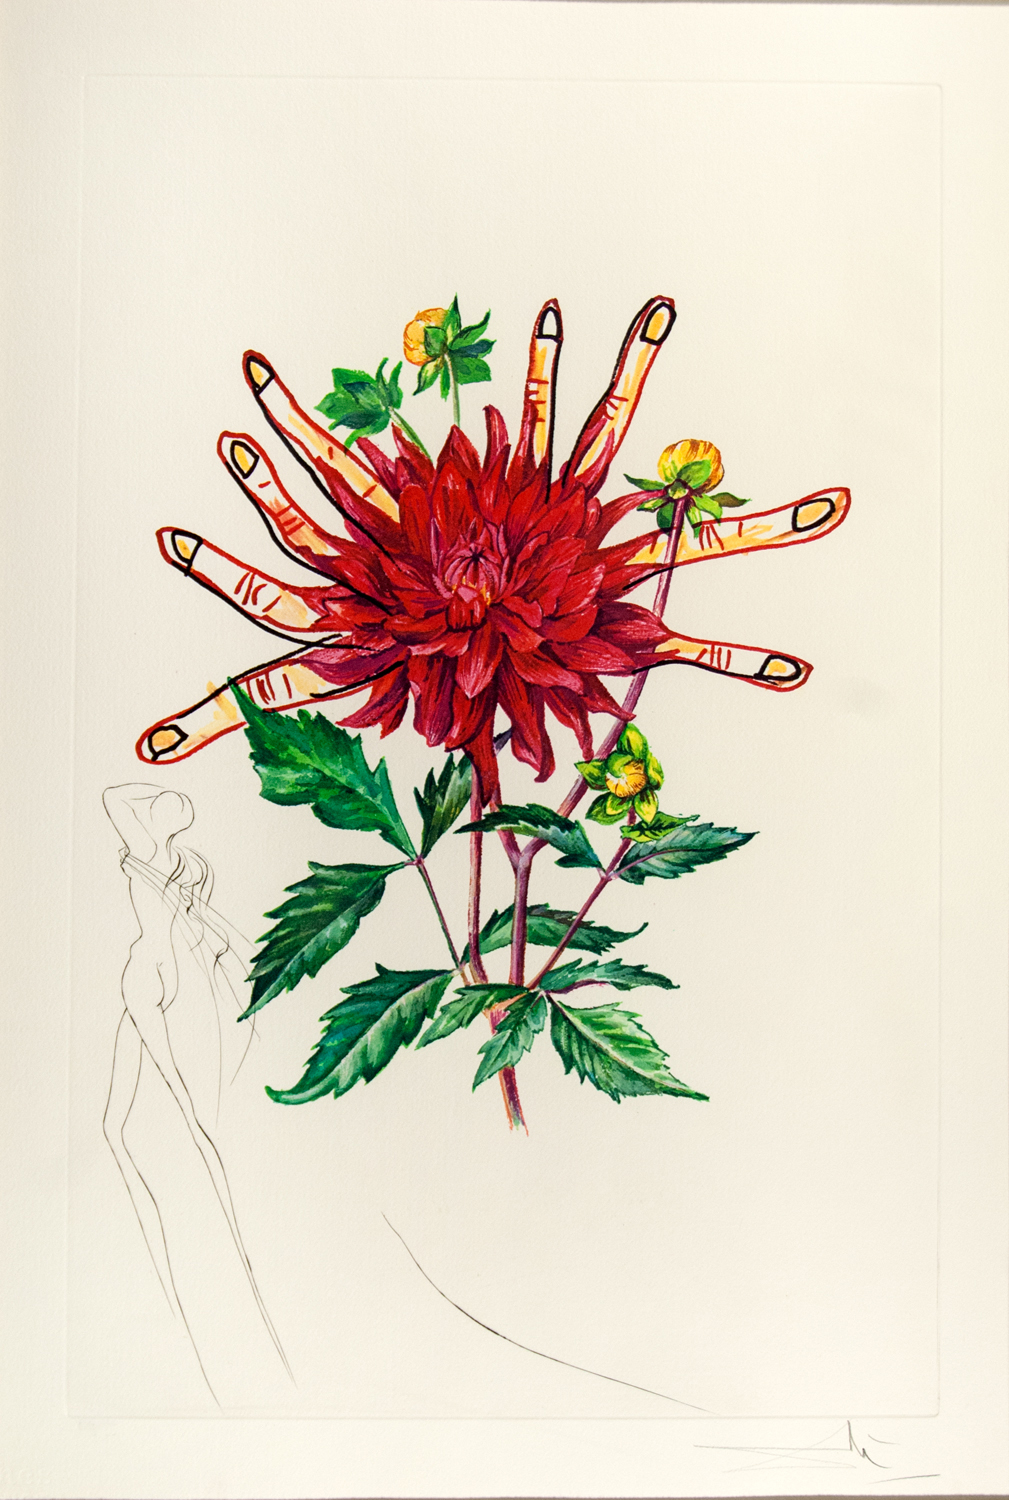 Floral  (Surrealistic Flowers 1972): Dahlia rapax (Dahlia & Fingers), heliogravure with etching, 23 x 16.5, signed EA, 1972, ML 538